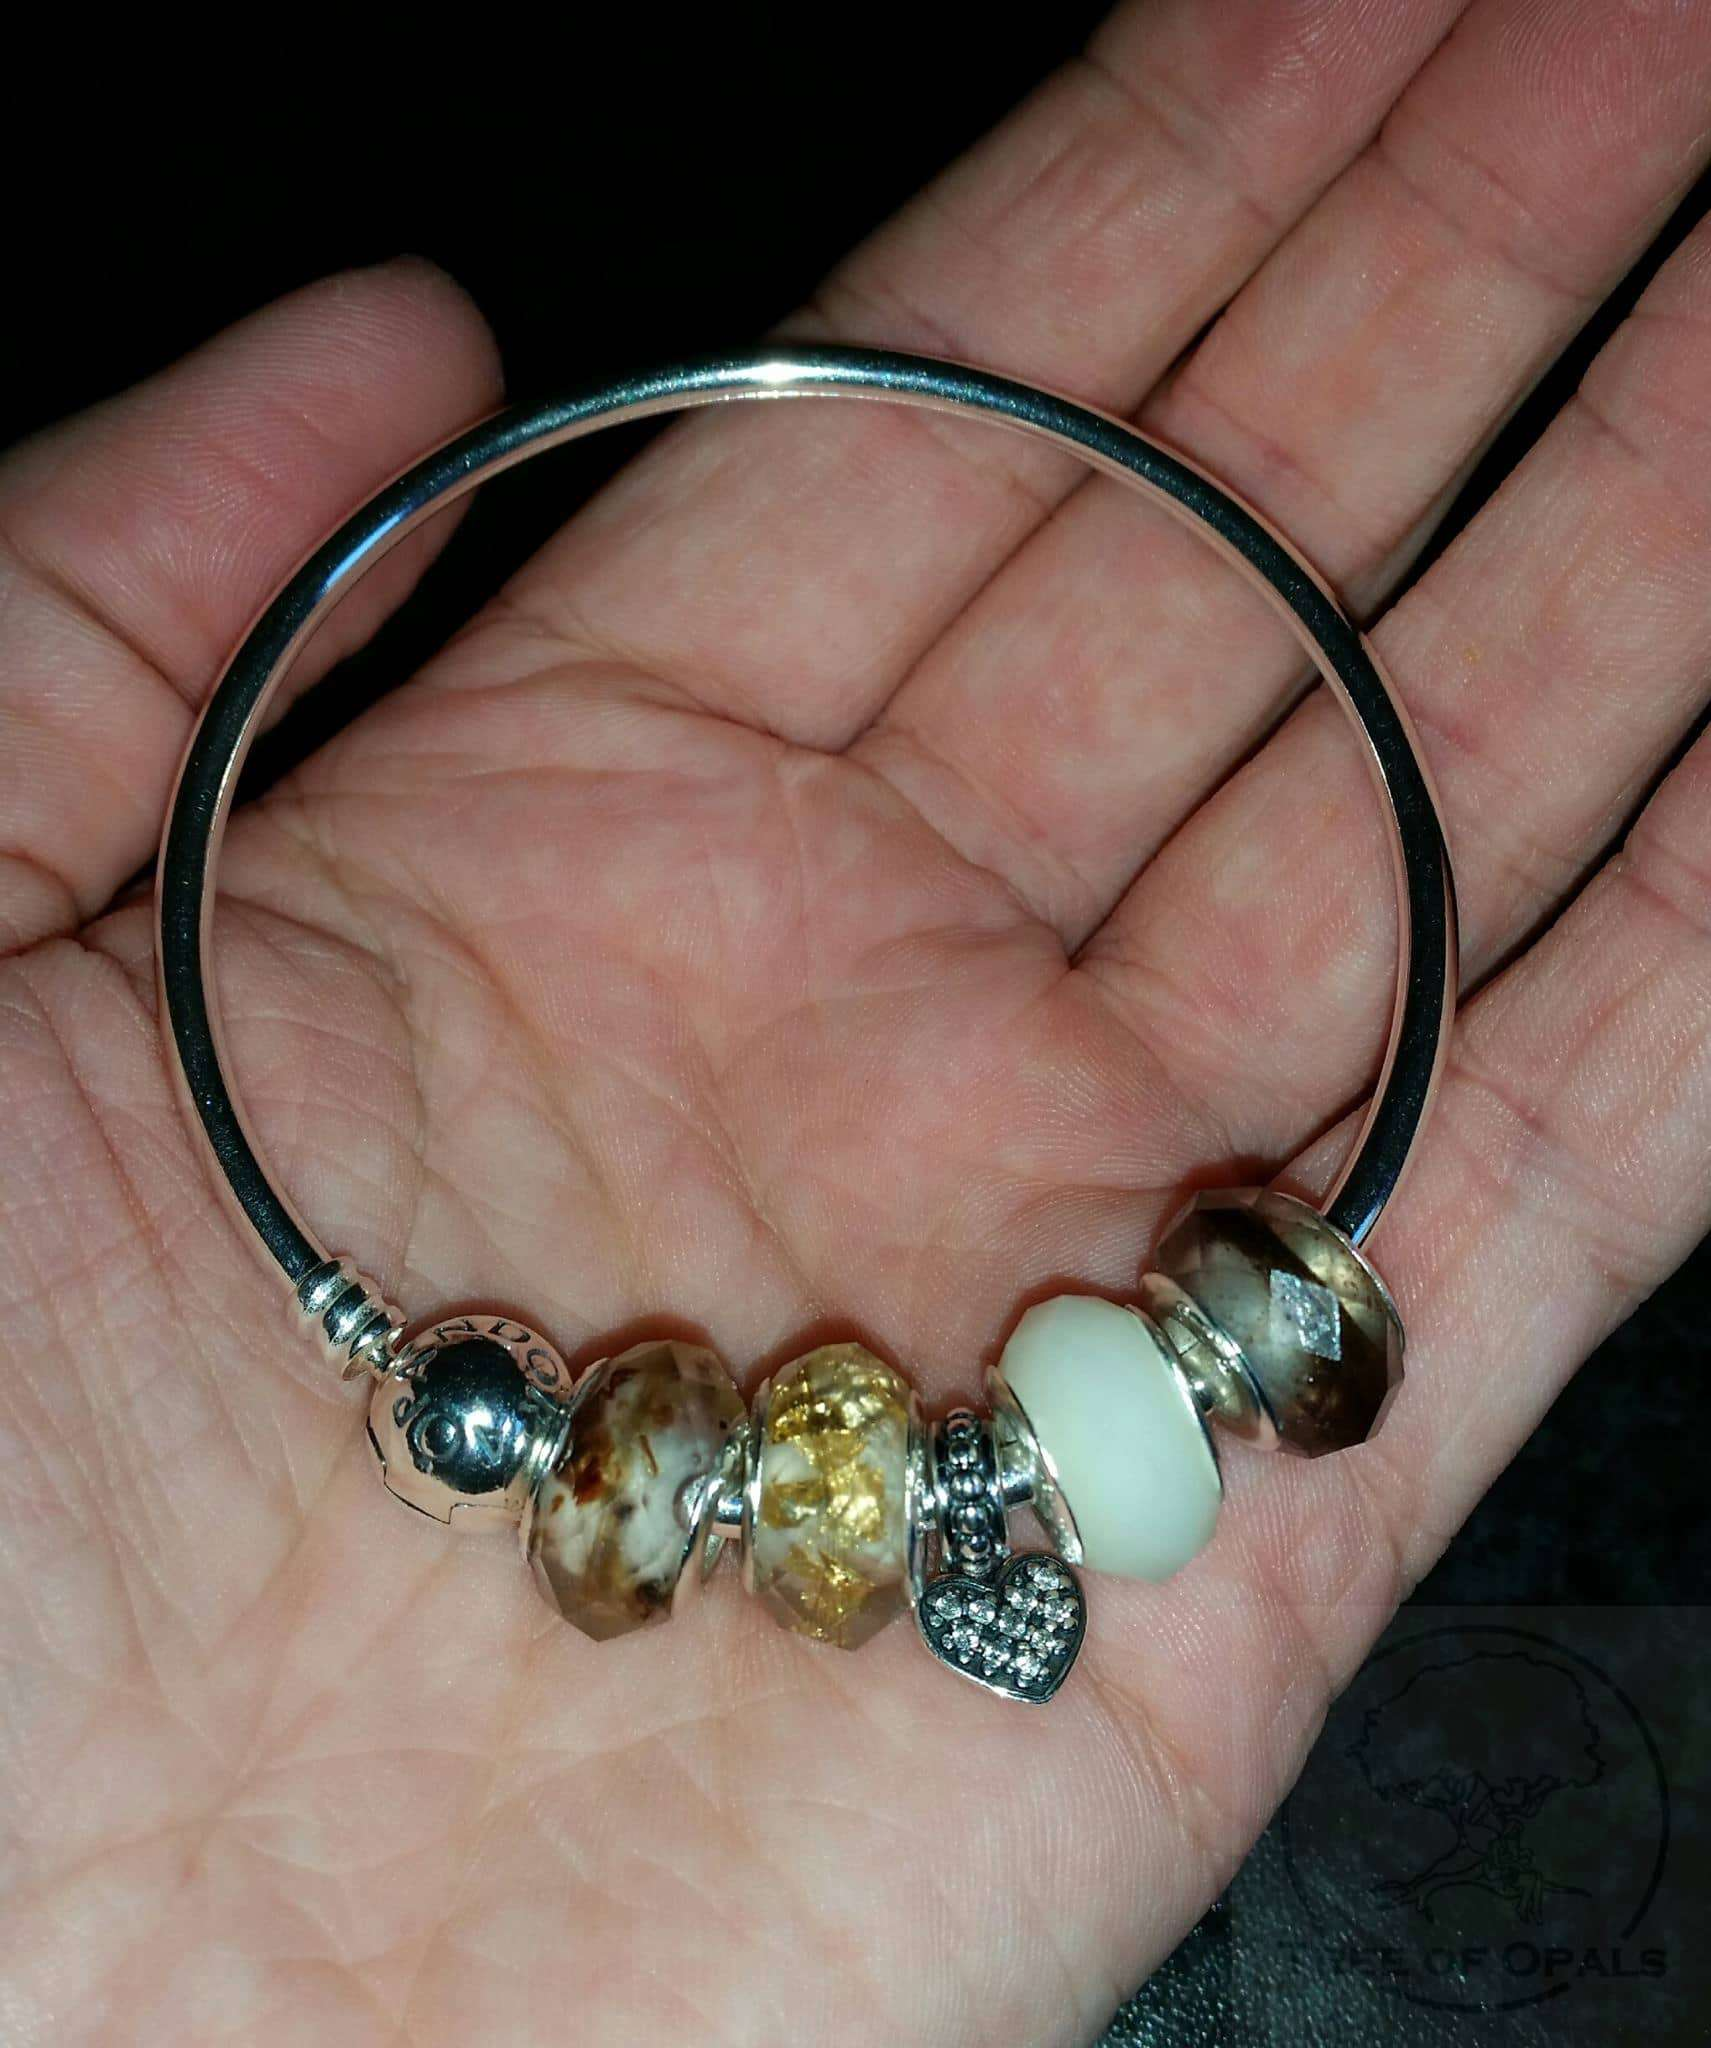 customer's own Pandora bracelet with umbilical cord lock of hair charms and breastmilk charm, retired faceted style